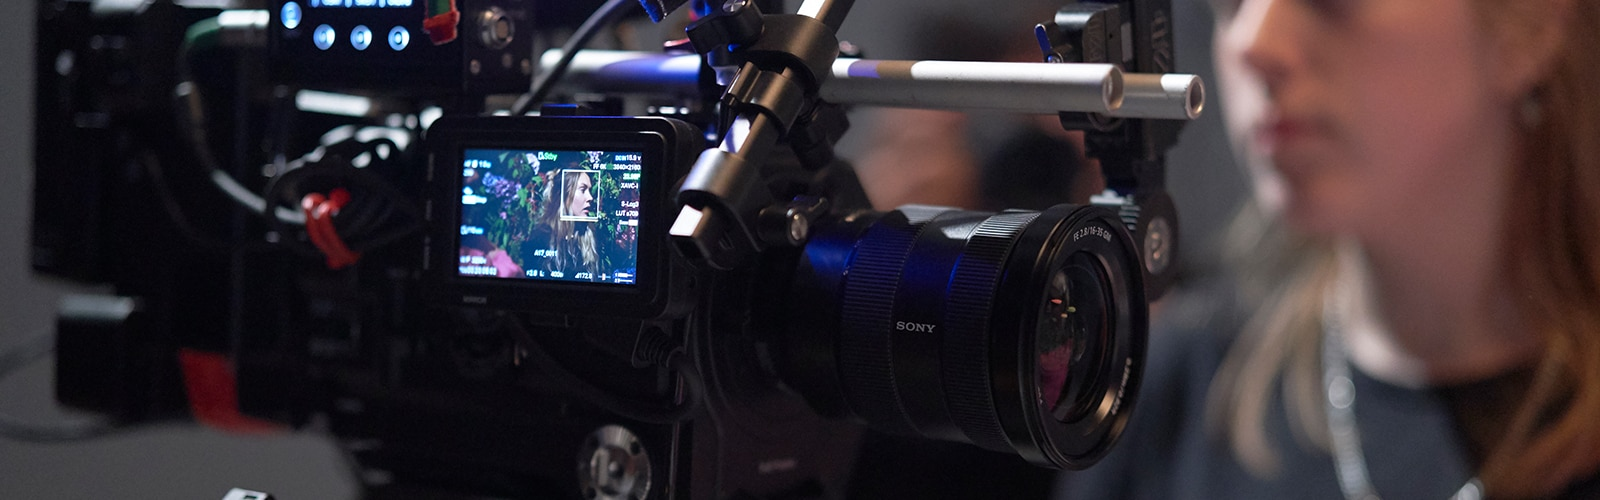 Rear-view of PXW-FX9 on shoulder of cameraman during shoot set-up